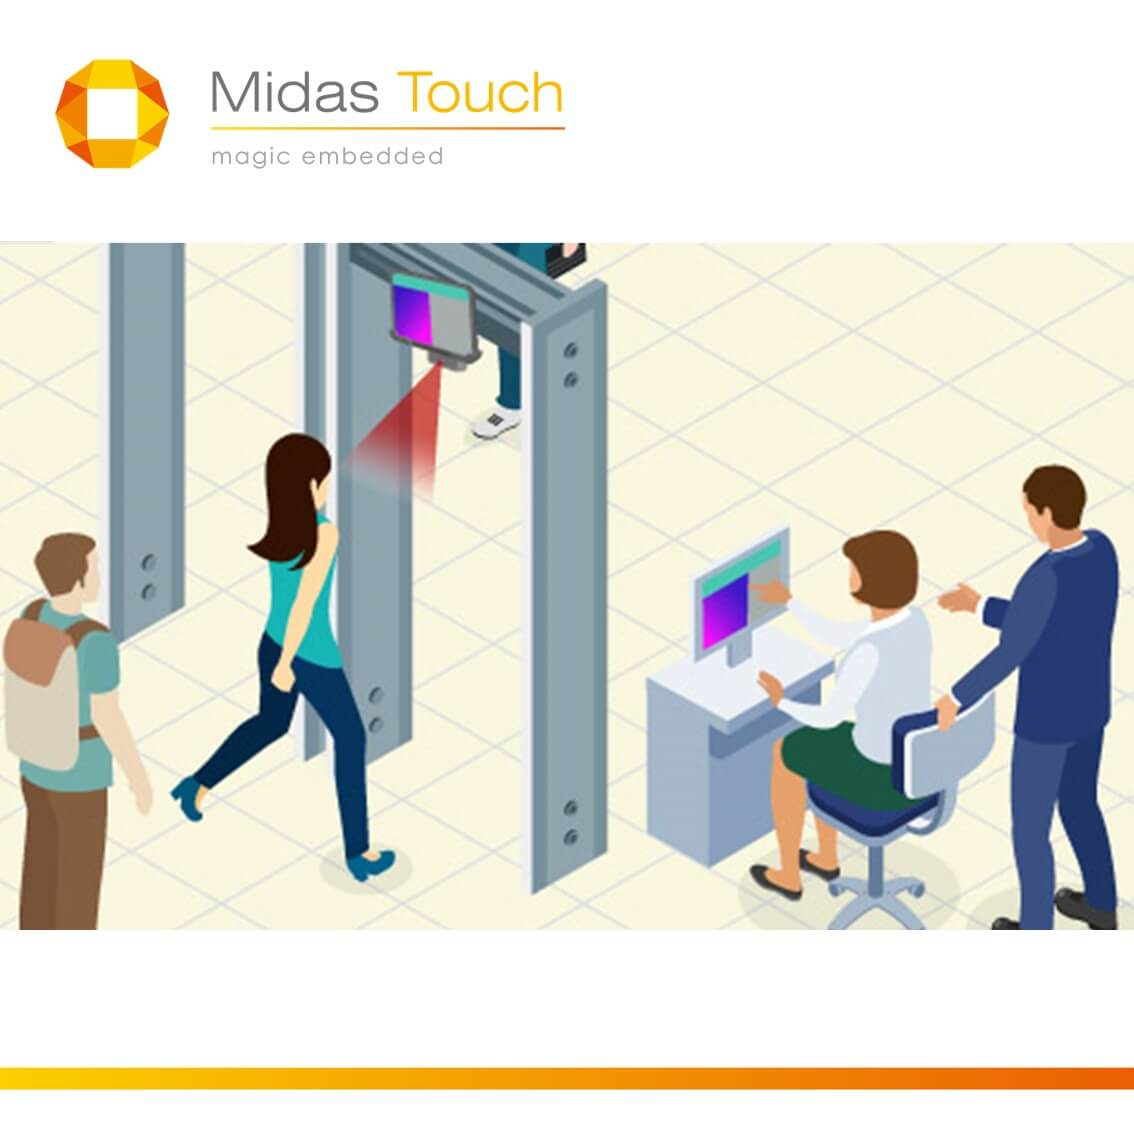 How to use Midas Touch Thermal Detection System?